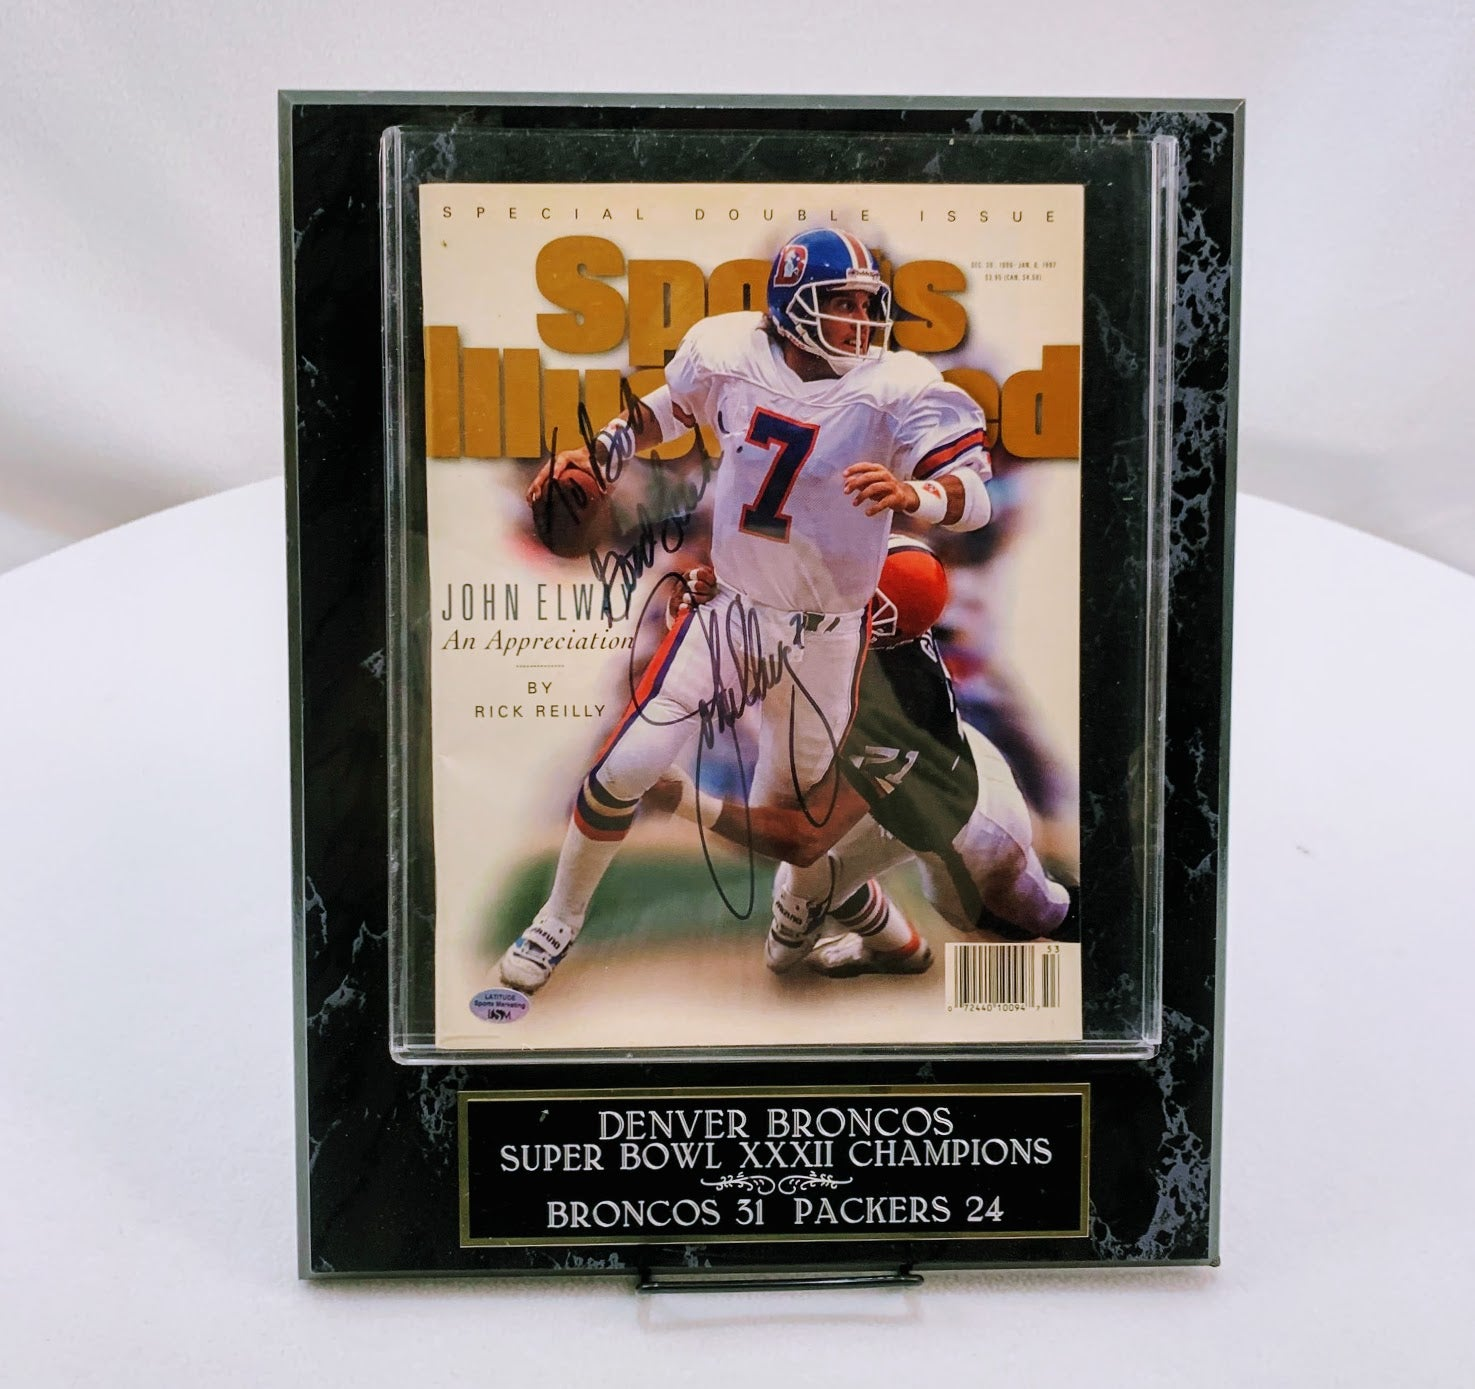 John Elway Signed Sports Illustrated Inscribed with 12x15 Plaque (Free Book Included) LSM COA